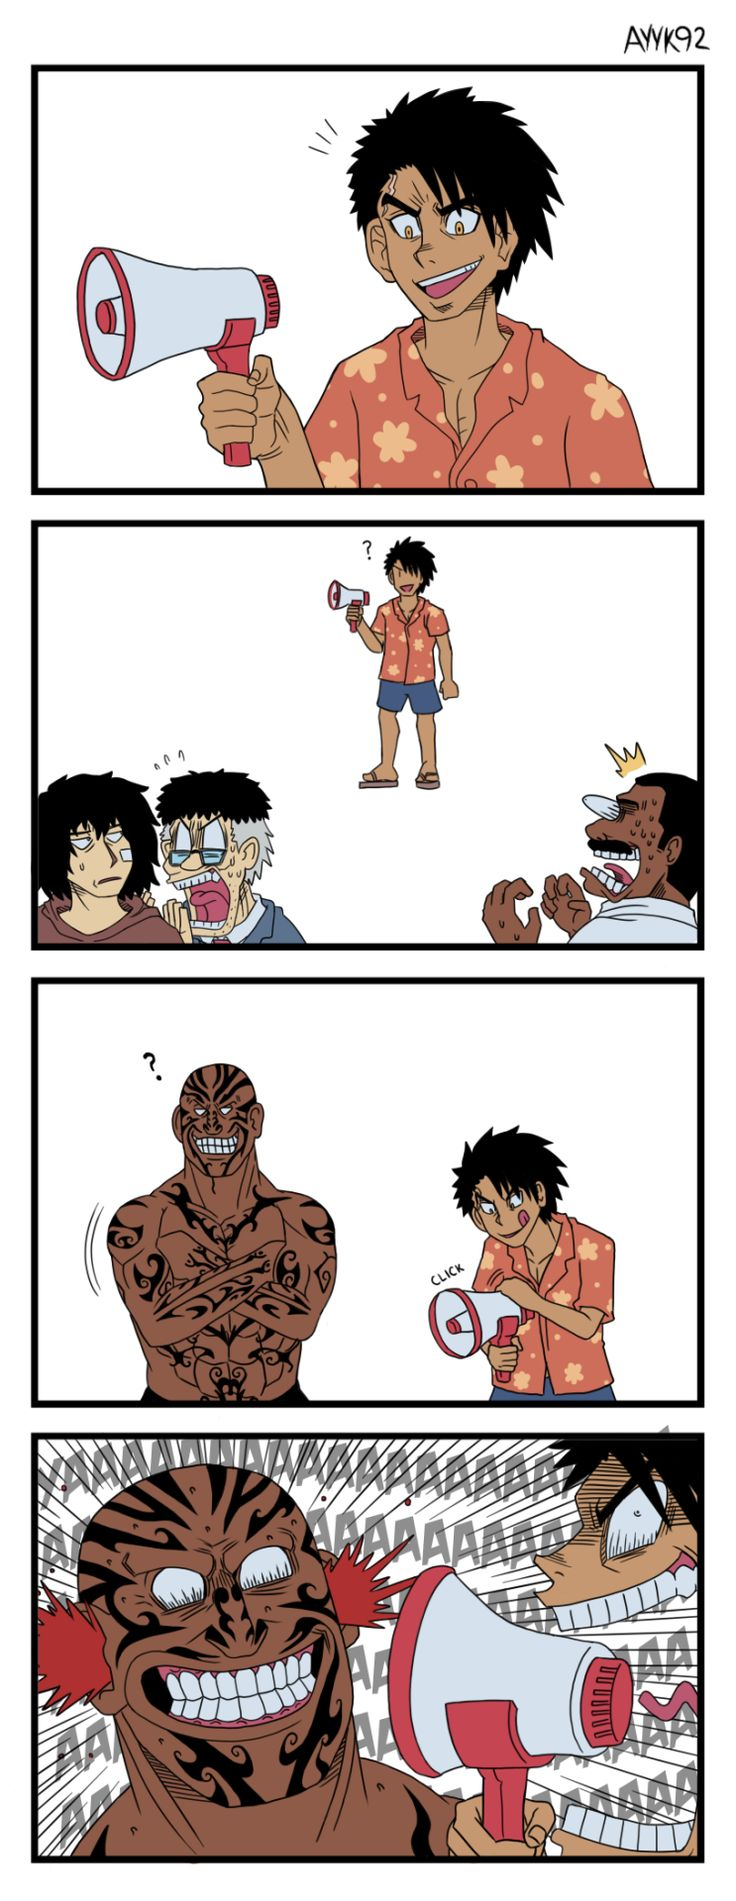 Give Kengan Ashura a look if you haven't yet, it's